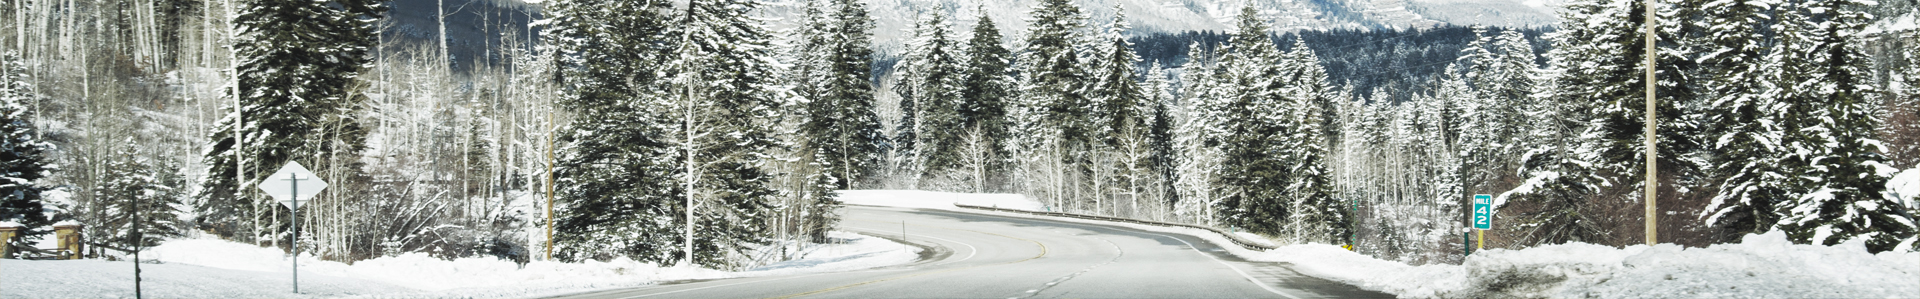 Winter road winding through mountain forest